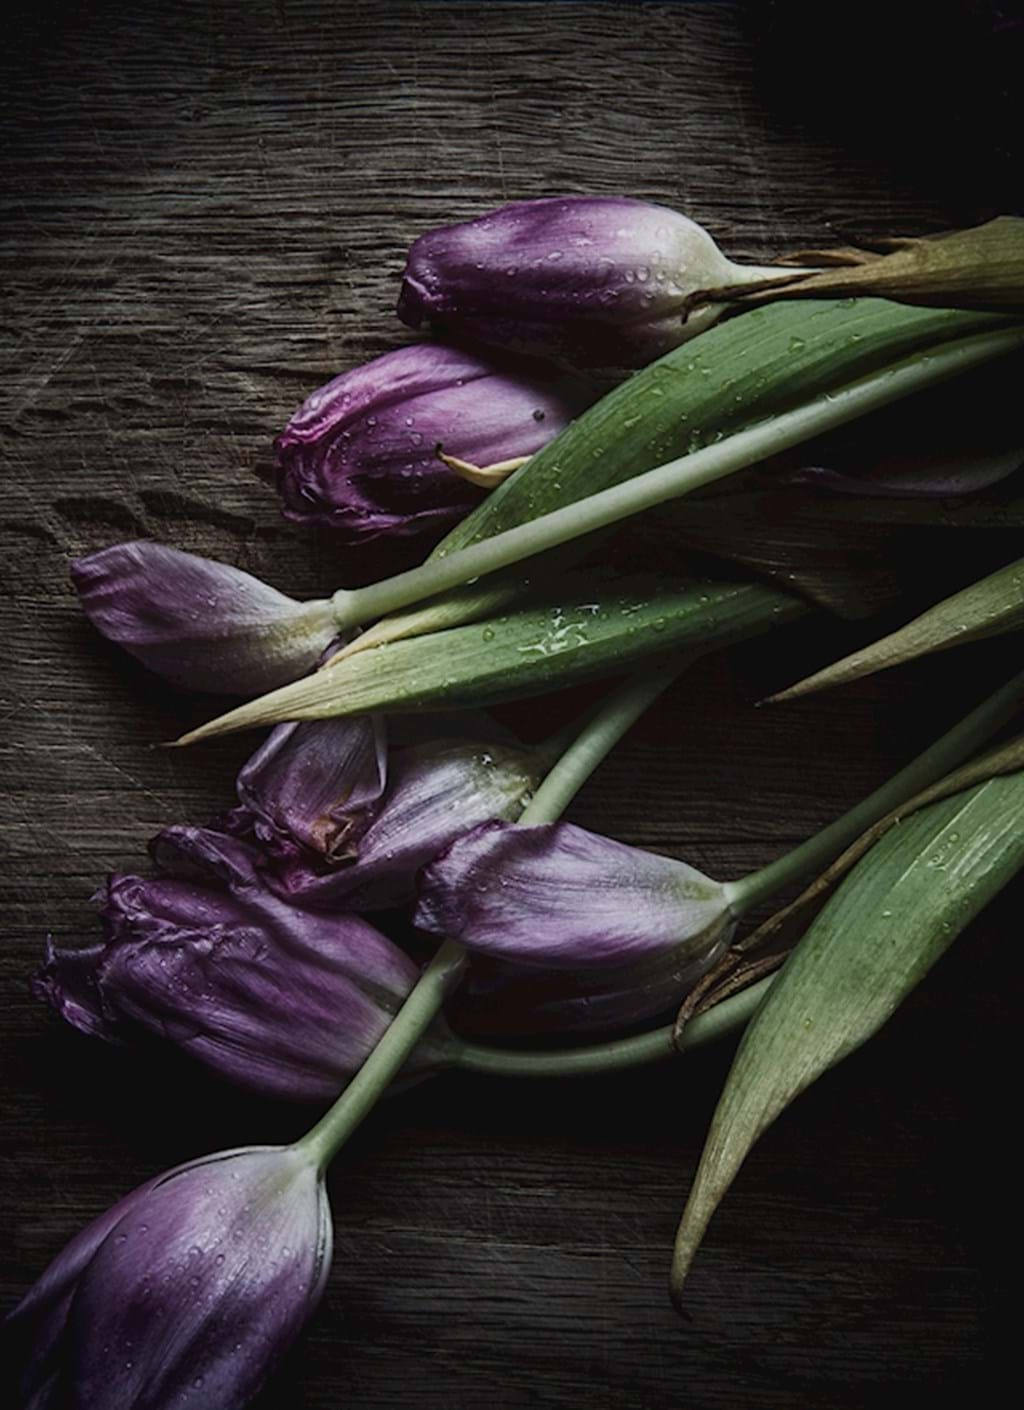 Poster: Lilac tulips - Digital